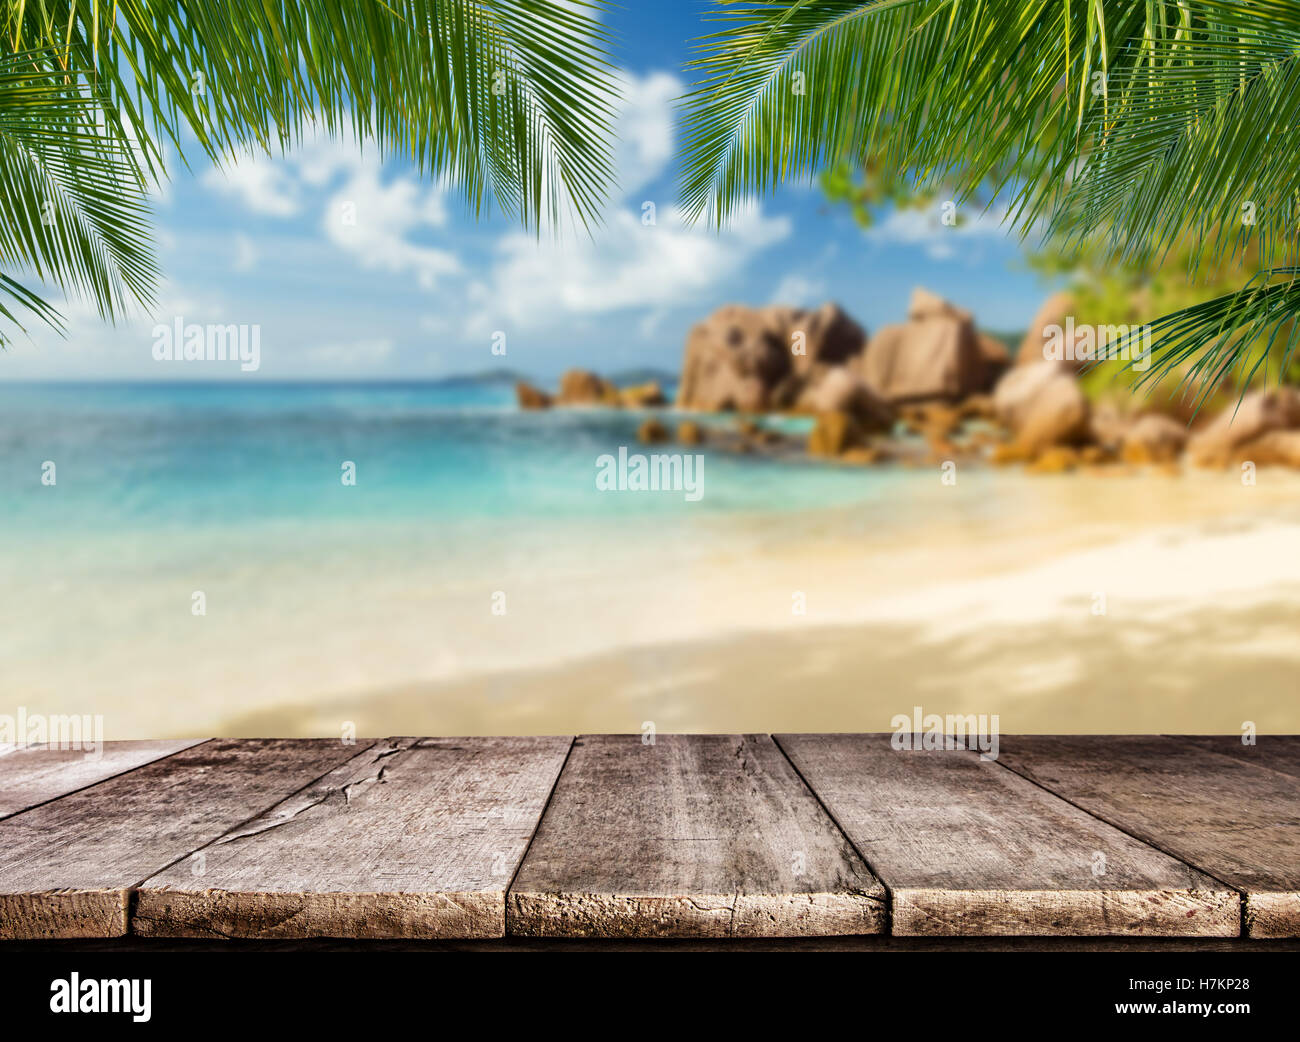 Empty wooden planks with tropical beach on background. Ideal for product placement - Stock Image